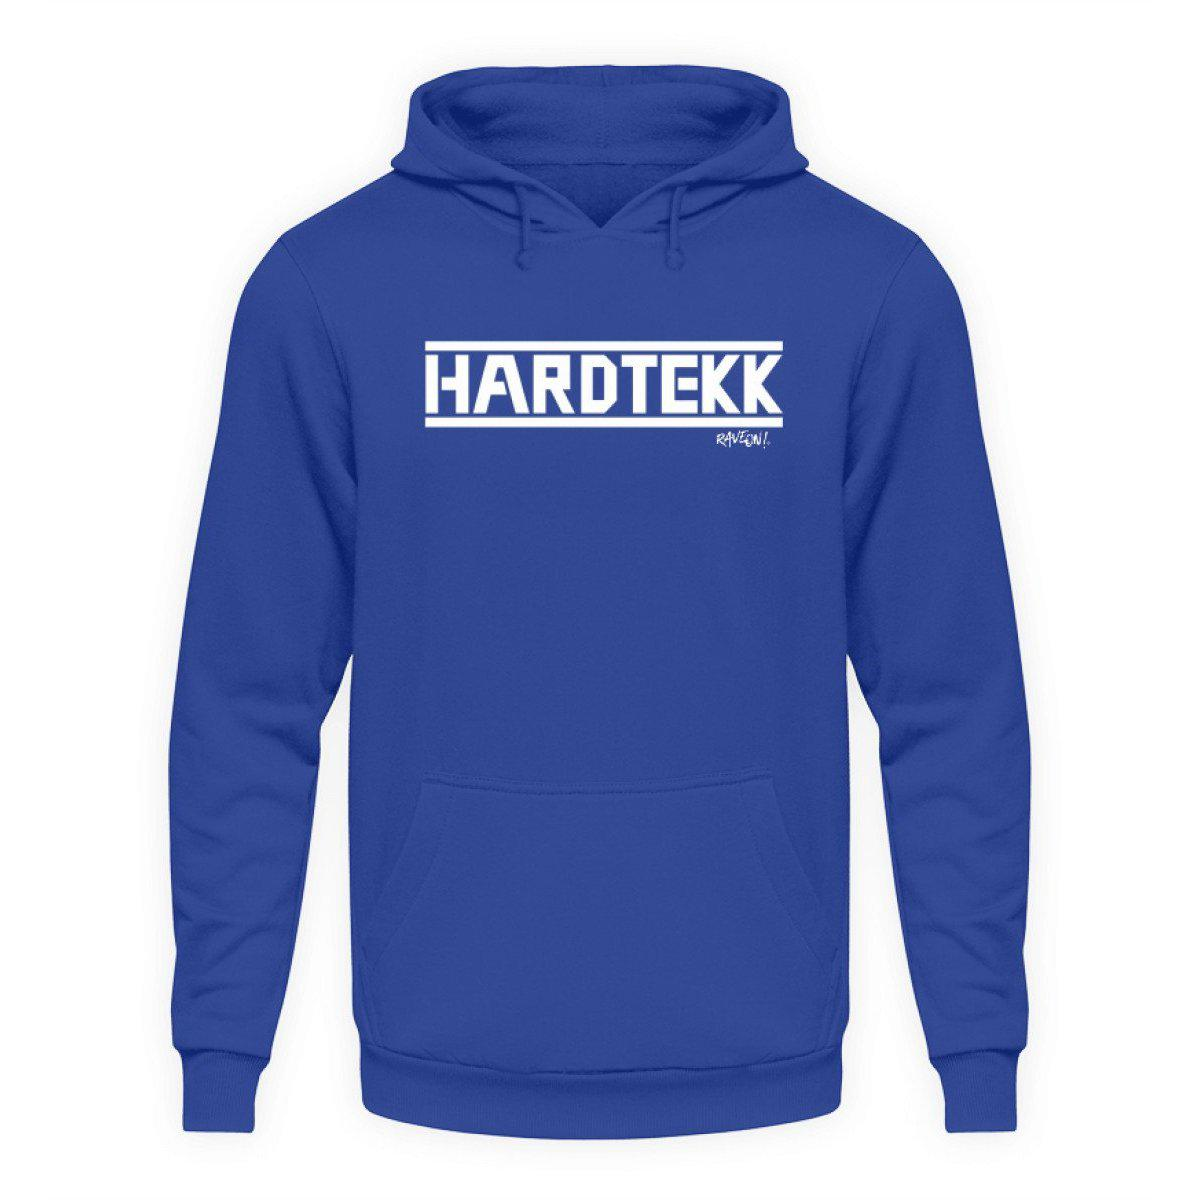 HARDTEKK - Rave On!® - Unisex Kapuzenpullover Hoodie Unisex Hoodie Royal Blue / L - Rave On!® der Club & Techno Szene Shop für Coole Junge Mode Streetwear Style & Fashion Outfits + Sexy Festival 420 Stuff